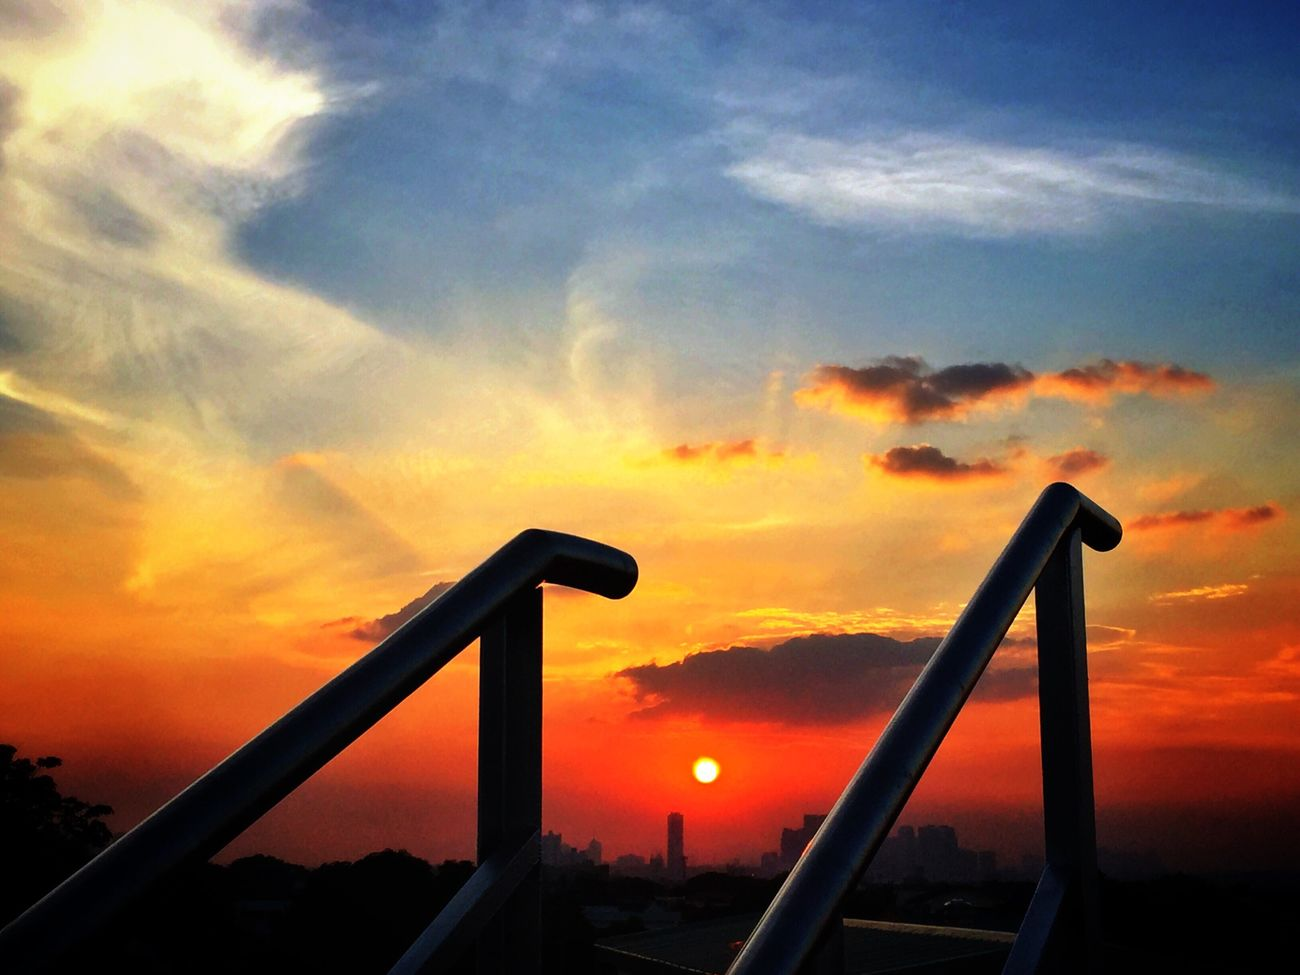 Every step I take, leads to you... Sunset Sunset_collection Clouds And Sky Clouds EyeEm Best Shots EyeEm Nature Lover EyeEmBestPics Eyeem Philippines Eye4photography  EyeEm Gallery